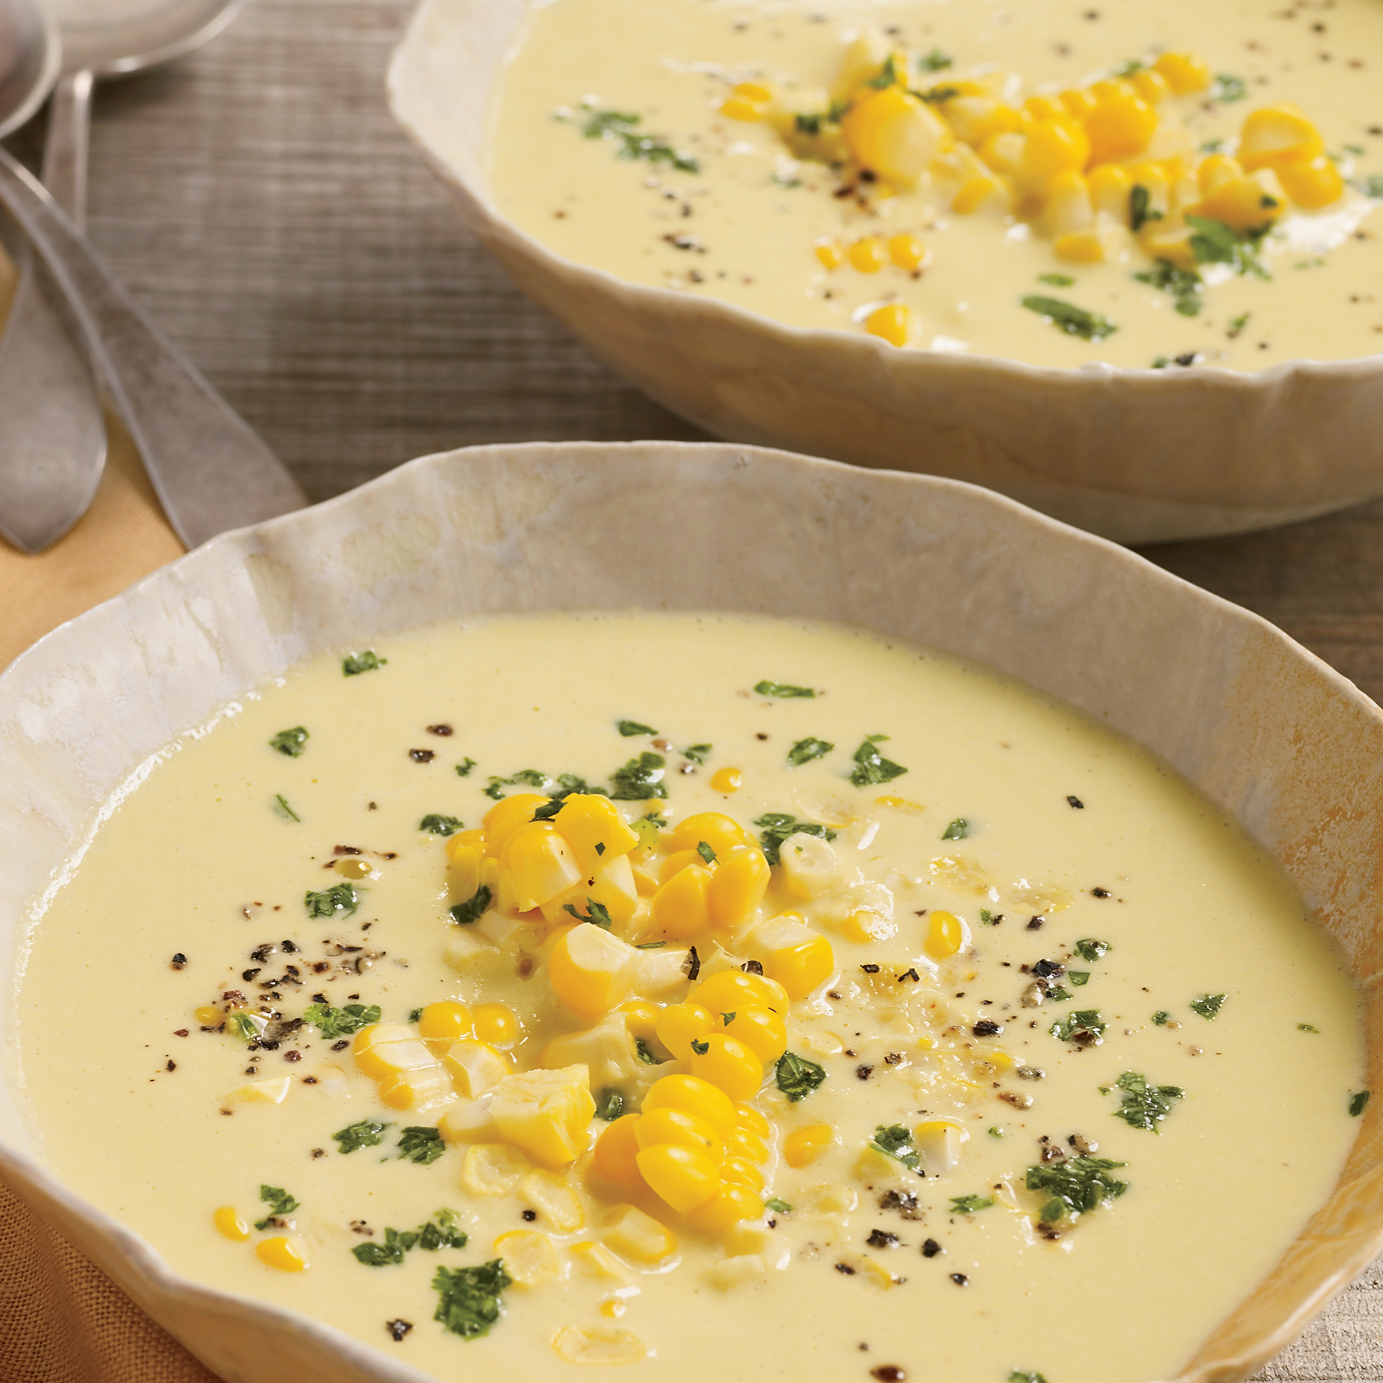 200806-r-raw-corn-chowder.jpg